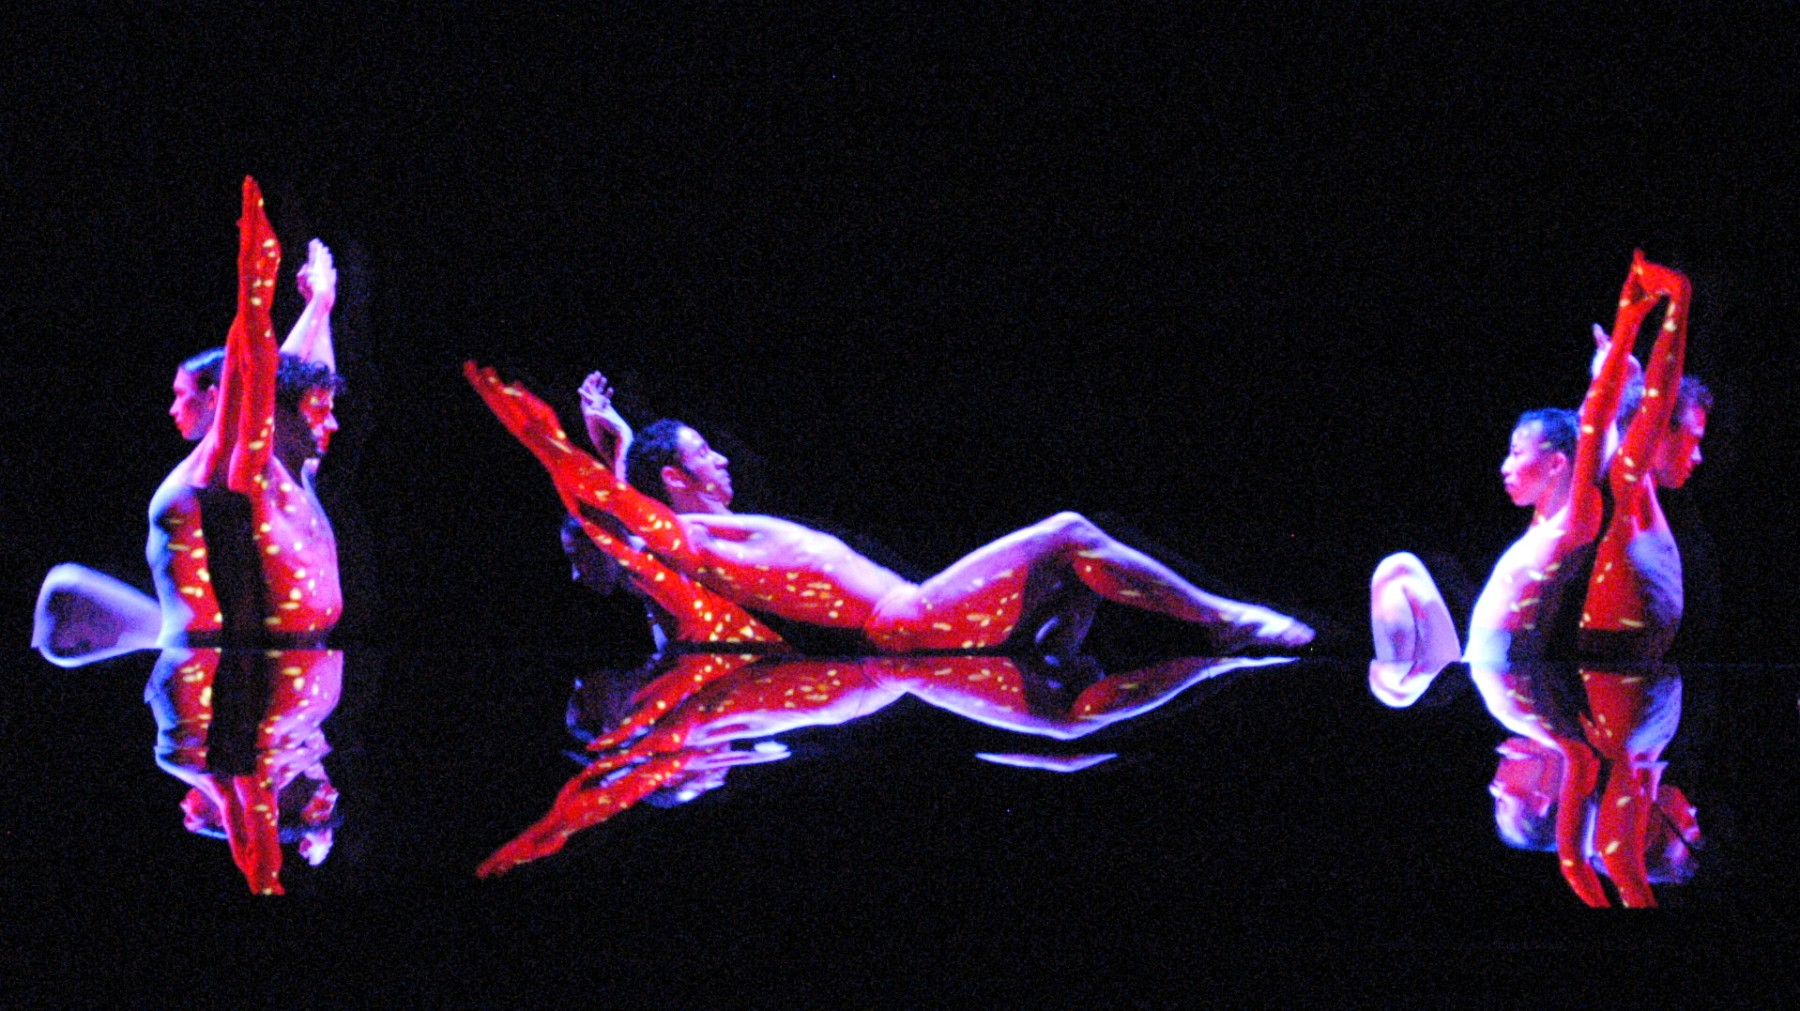 Red and yellow light is projected on dancers' skins as they stand back to back with their arms extended